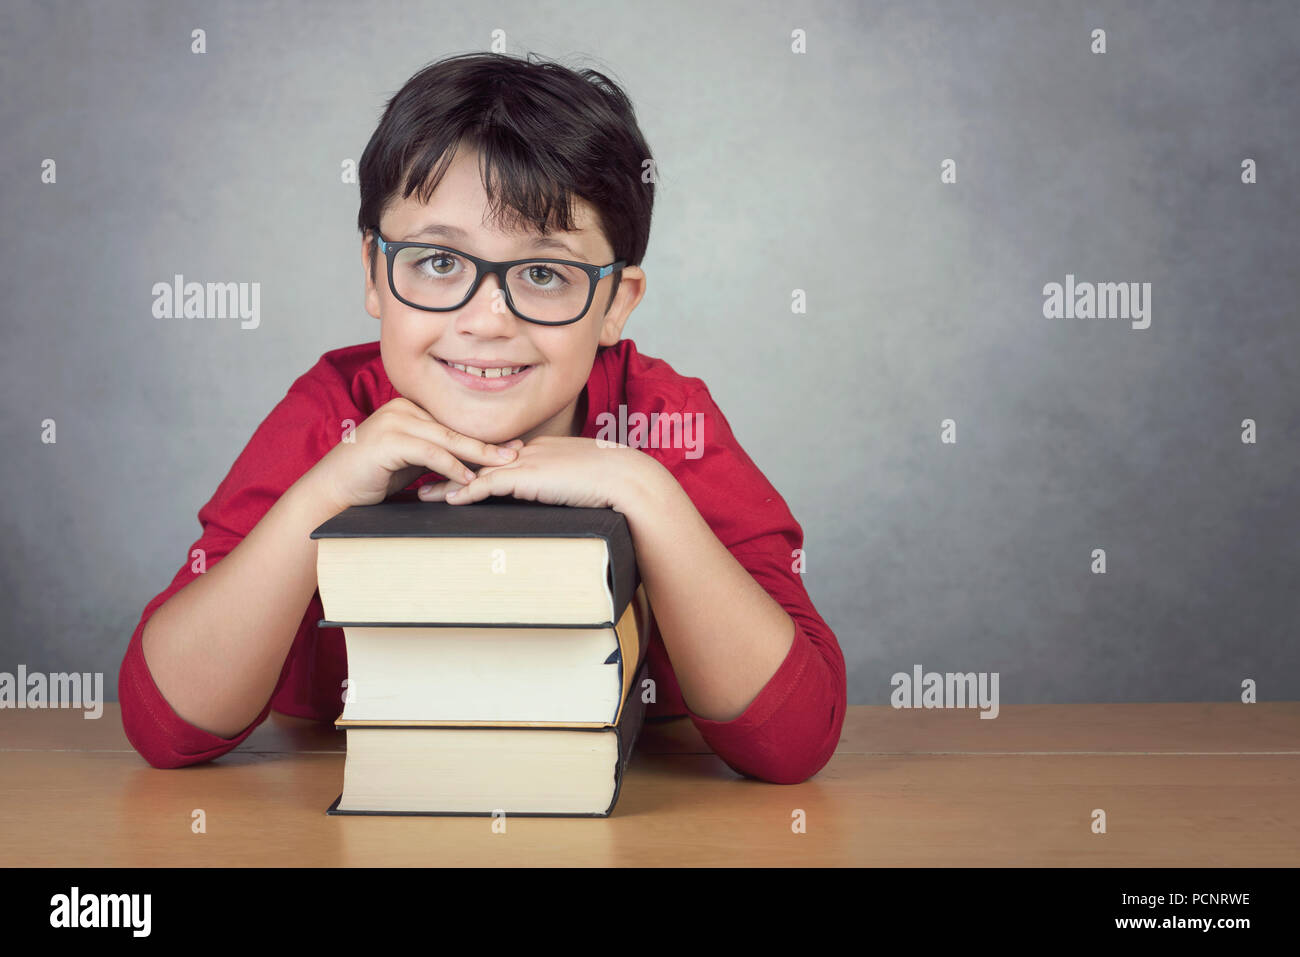 Smiling little boy leaning on livres sur une table sur fond noir Photo Stock